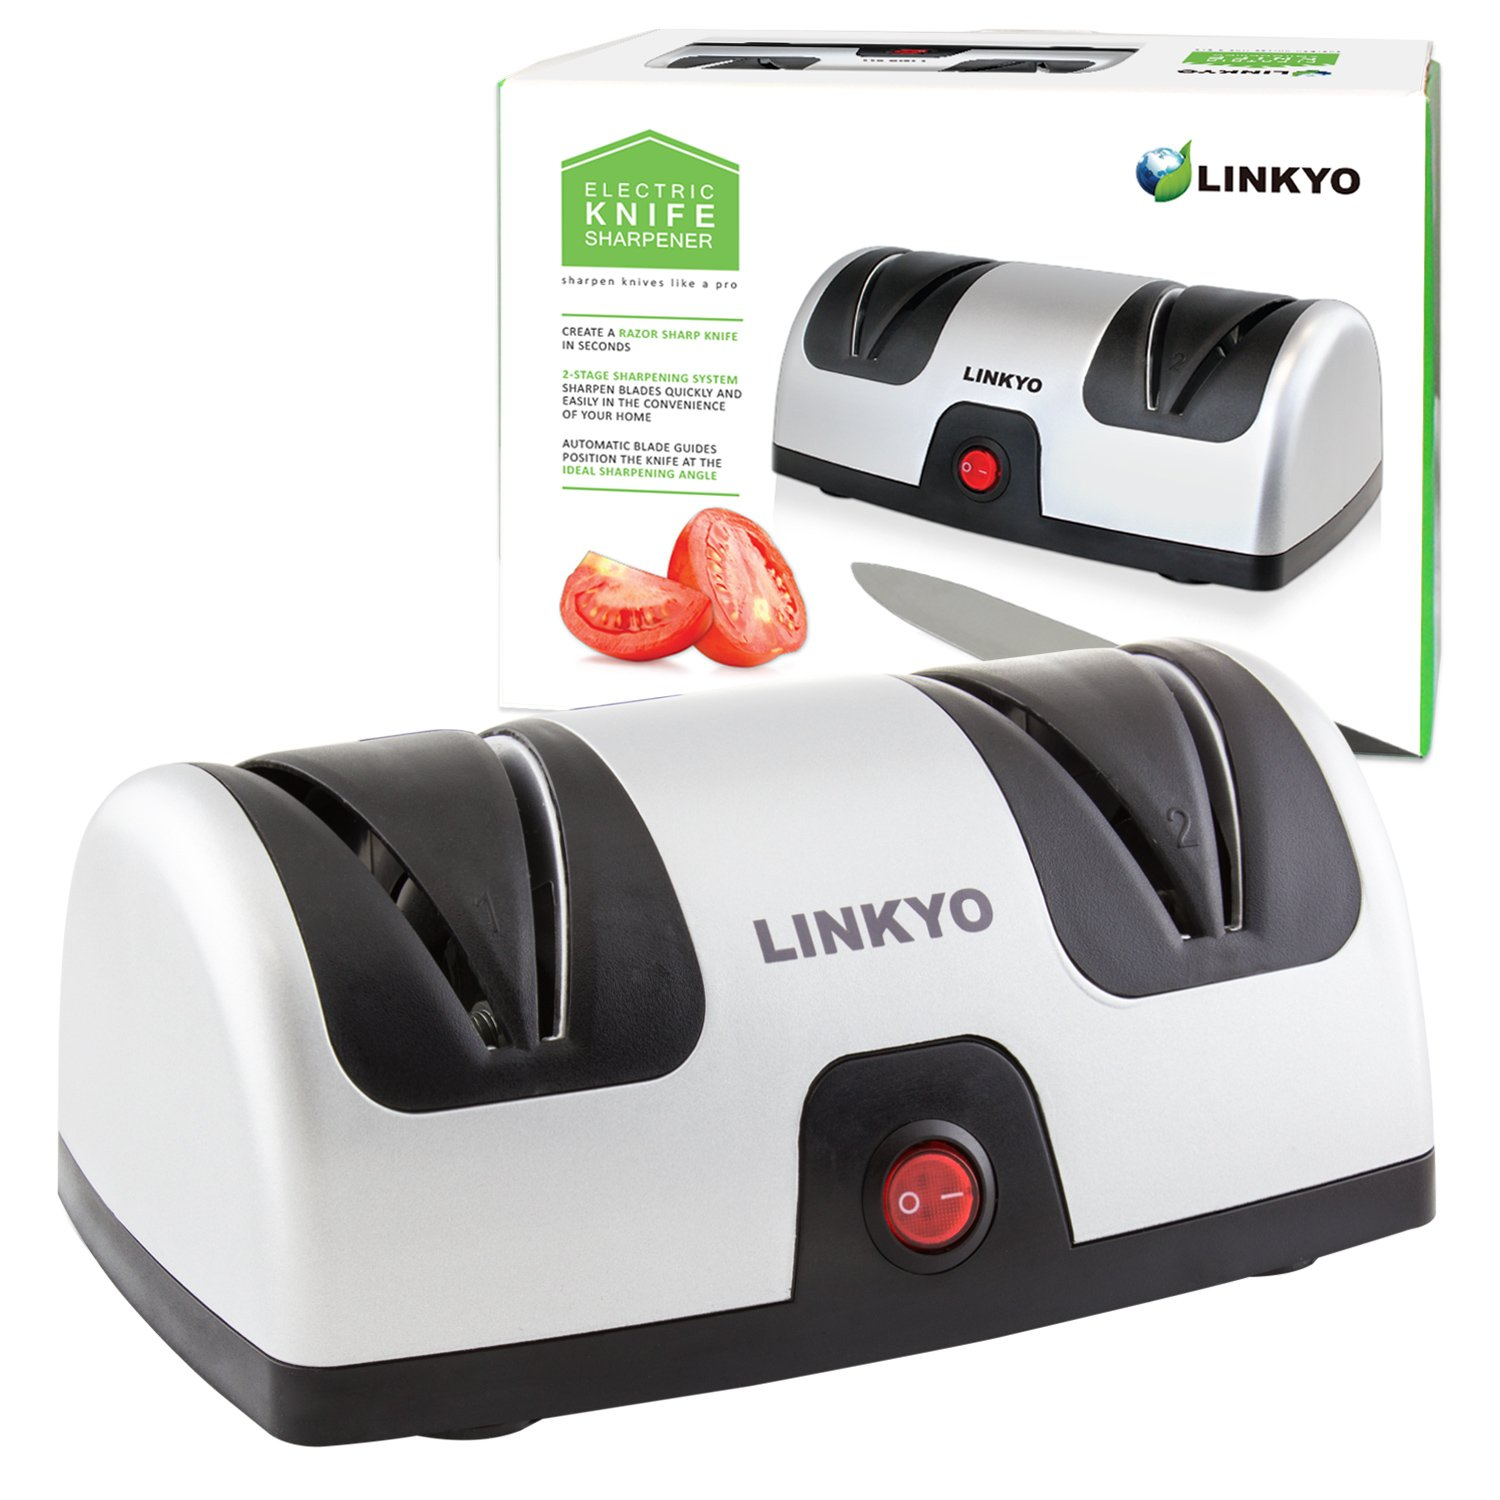 LINKYO Electric Knife Sharpener, Kitchen Knives Sharpening System by LINKYO (Image #1)